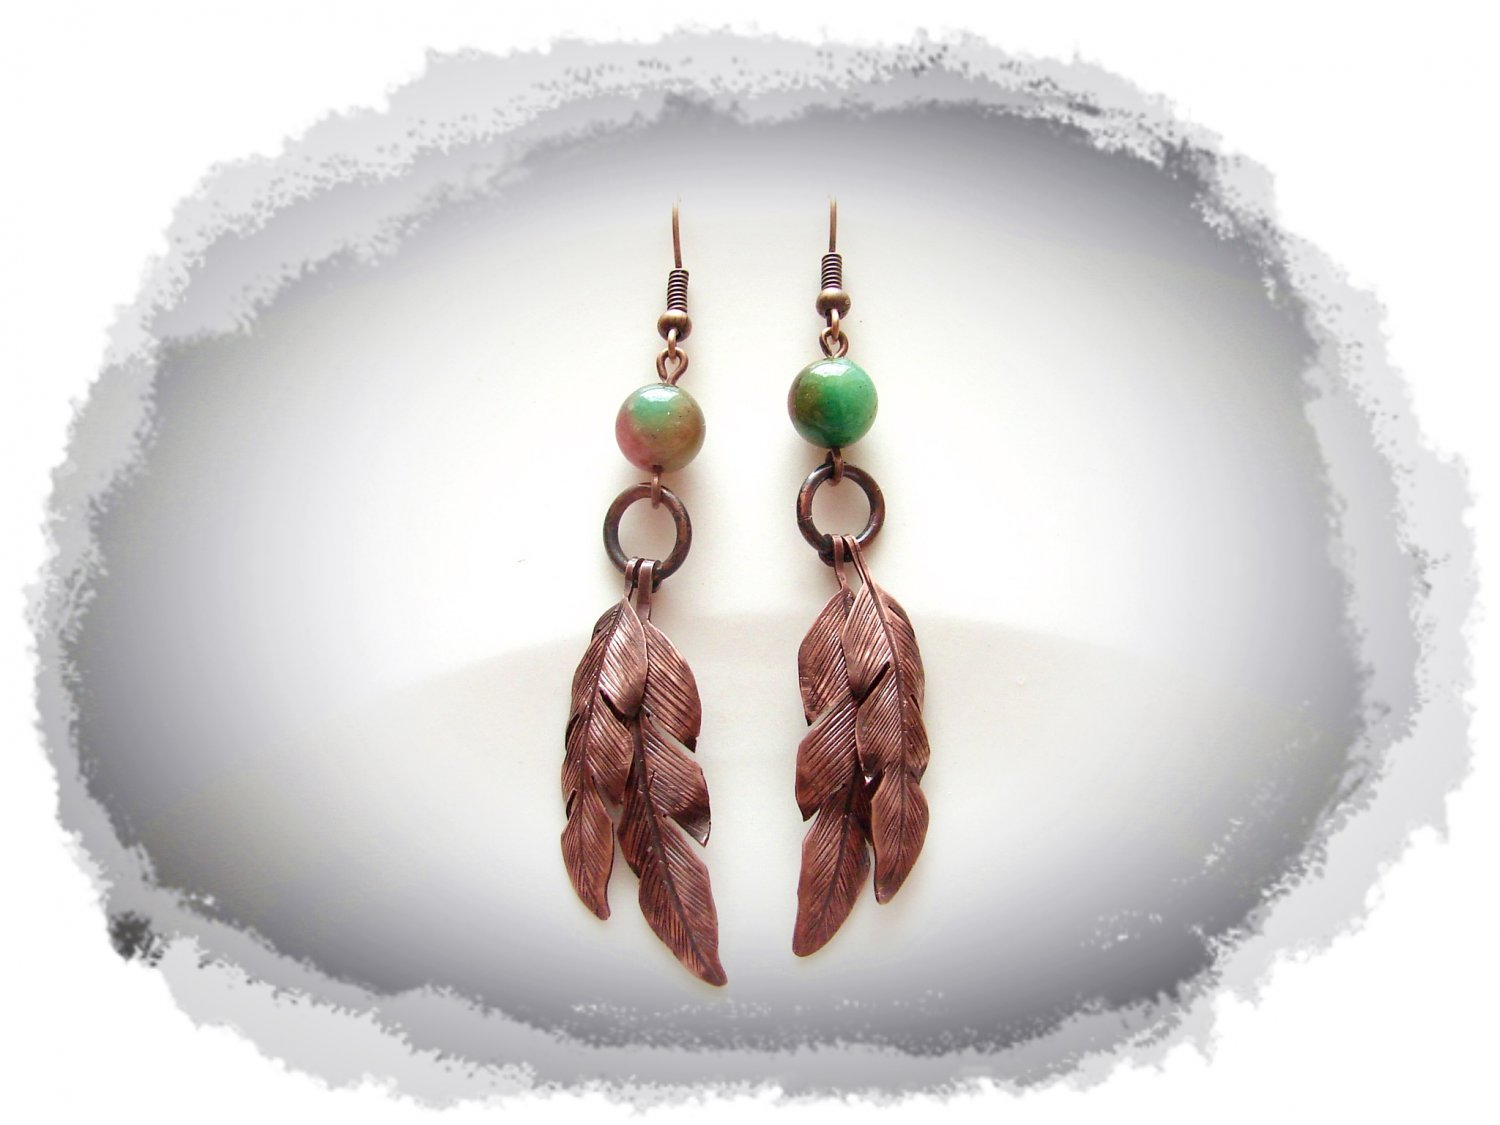 Earrings - Hand engraved feathers